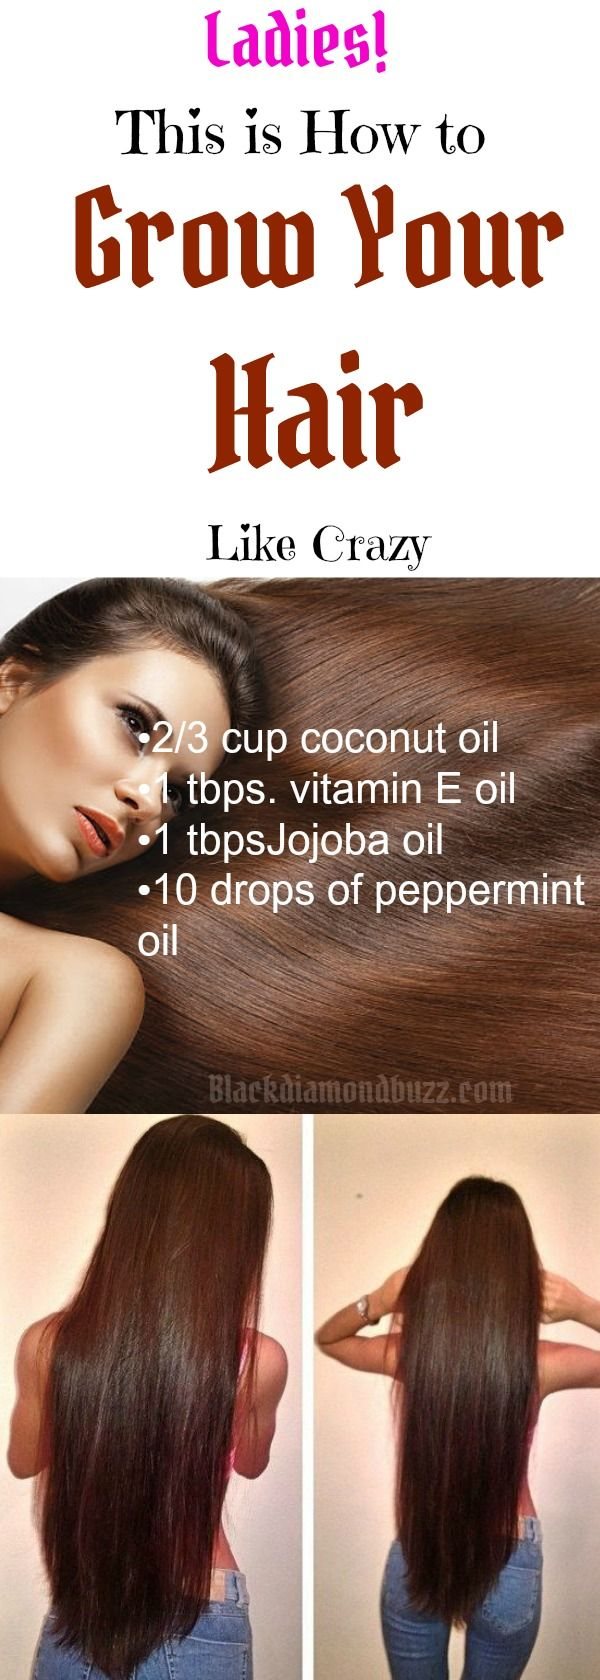 How to use coconut oil for hair correctly Can I use coconut oil for hair